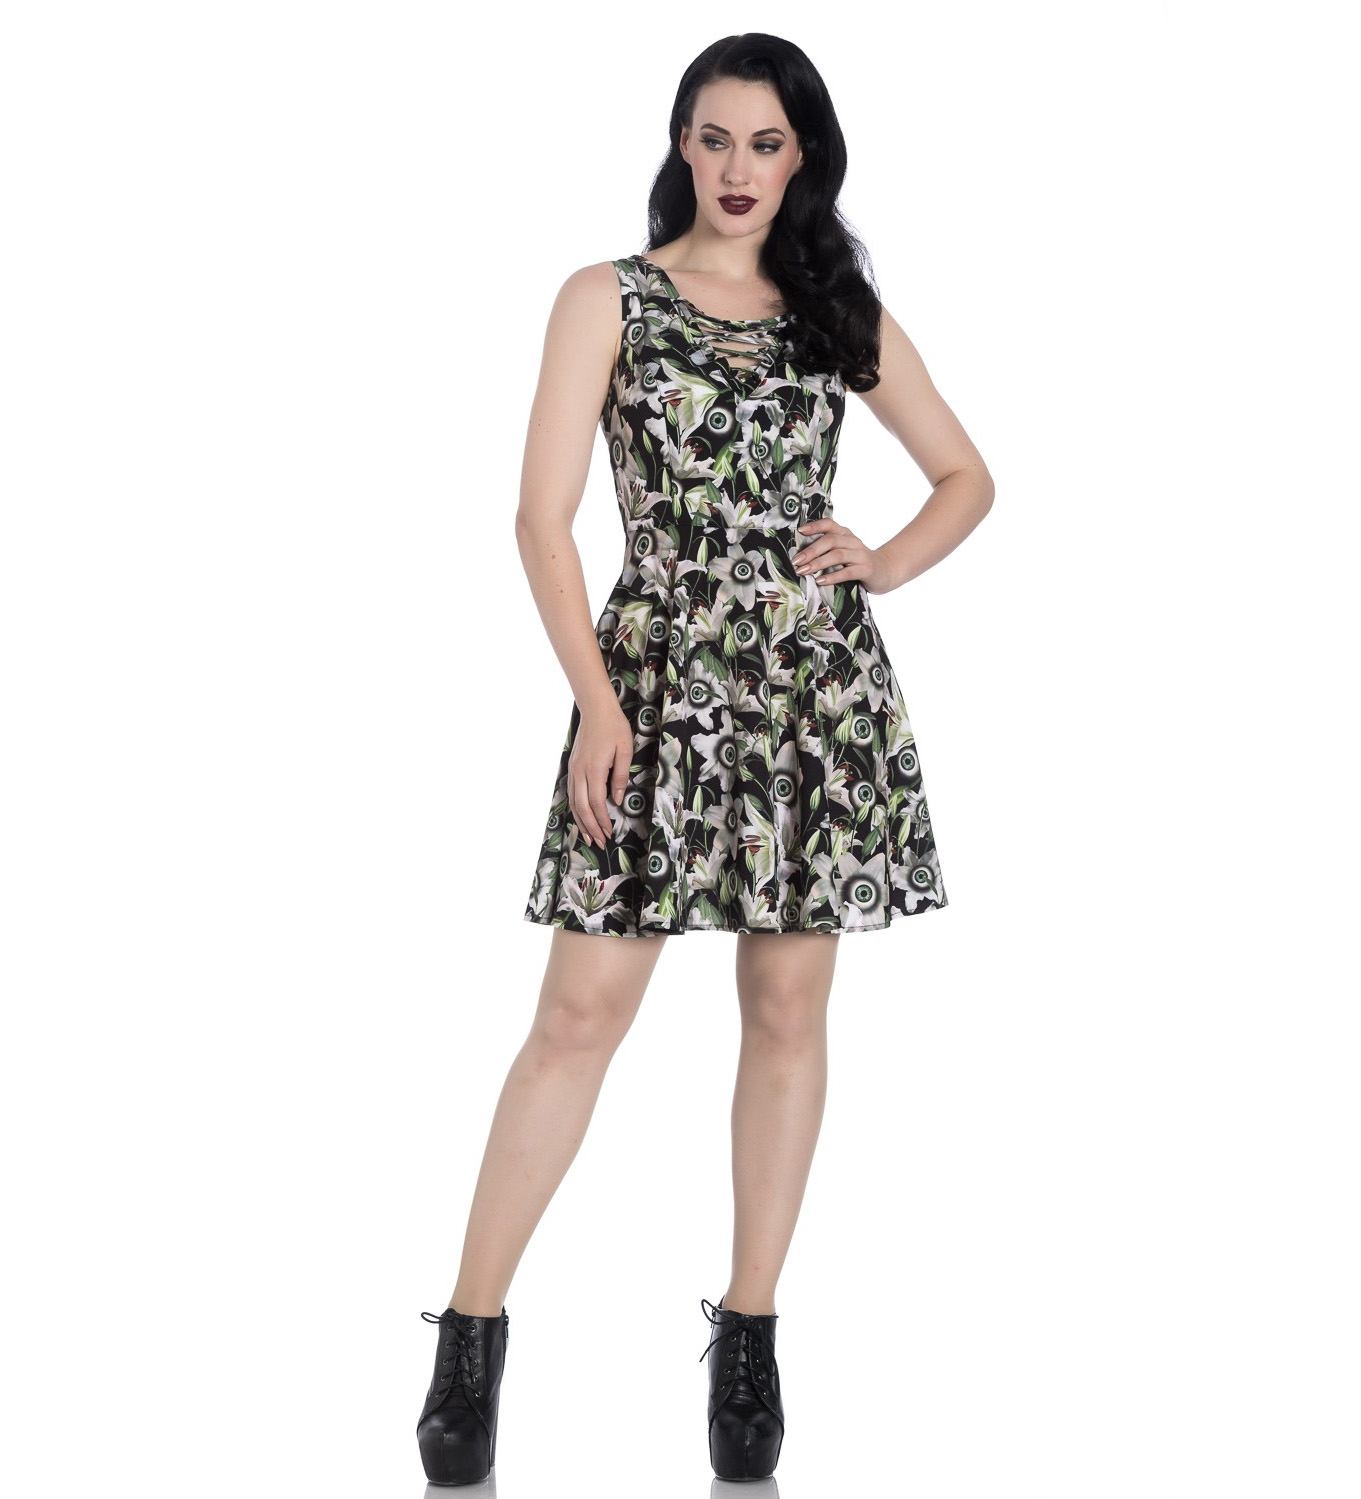 Hell-Bunny-Black-Lace-Up-Goth-Punk-Mini-Dress-PEEPERS-Eyeballs-Flowers-All-Sizes thumbnail 39